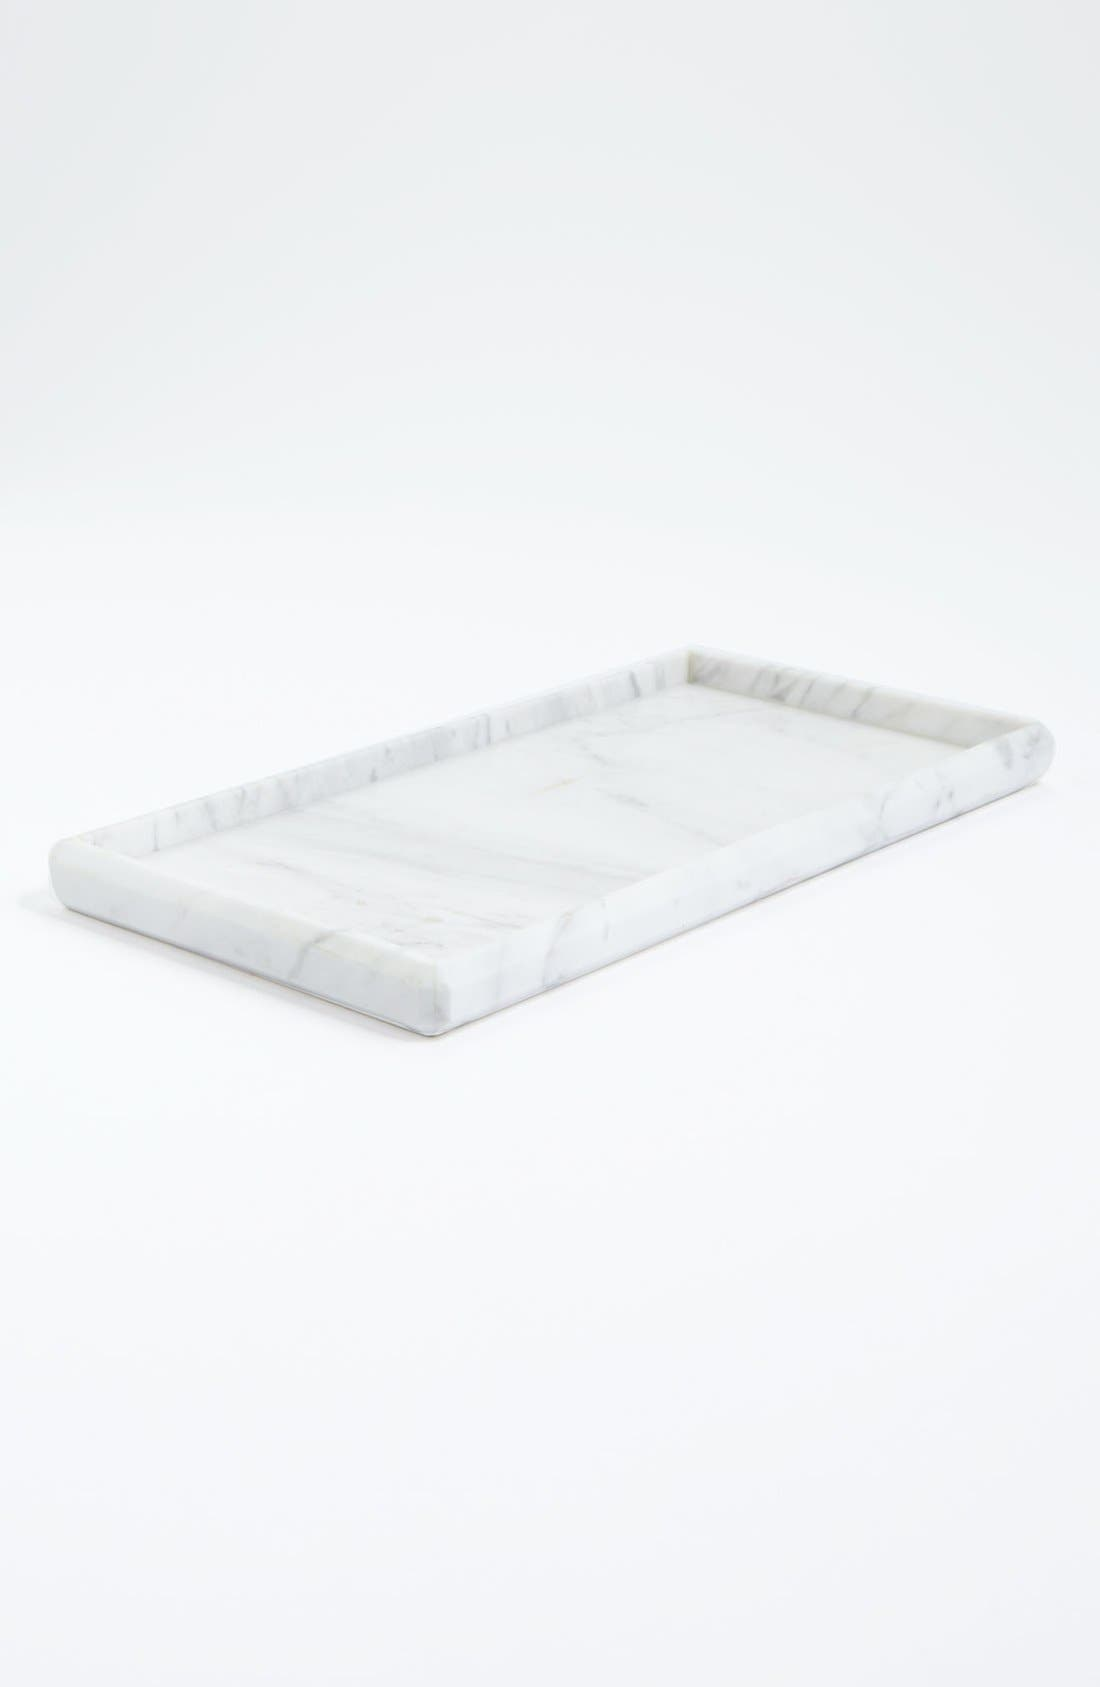 Waterworks Studio Luna White Marble Tray (Online Only)